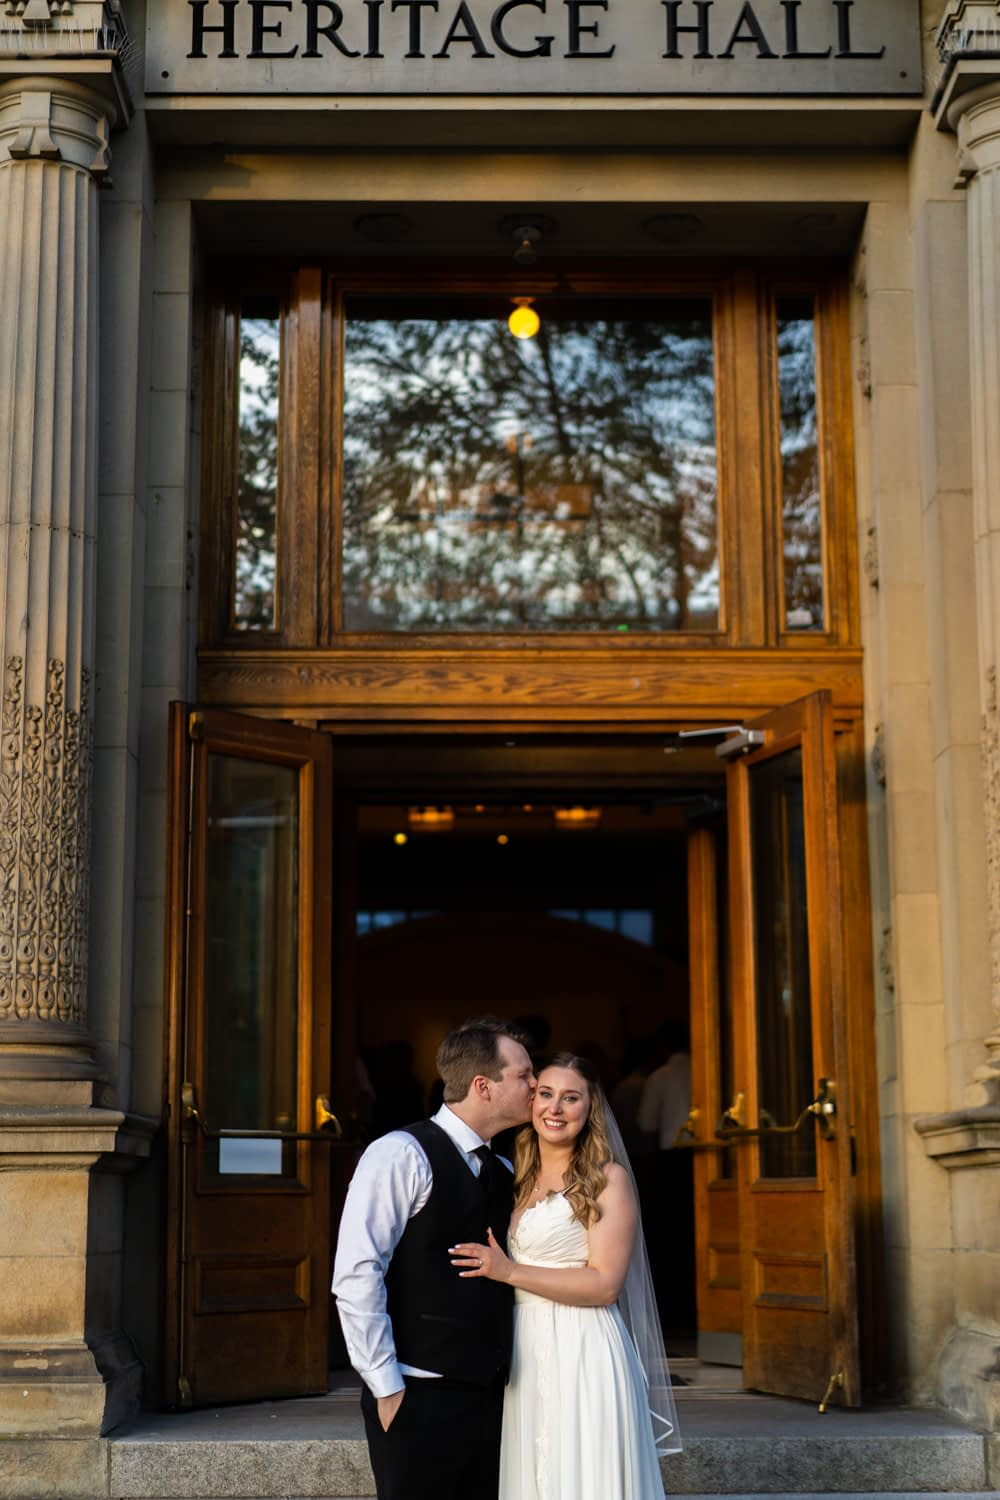 Heritage Hall Wedding